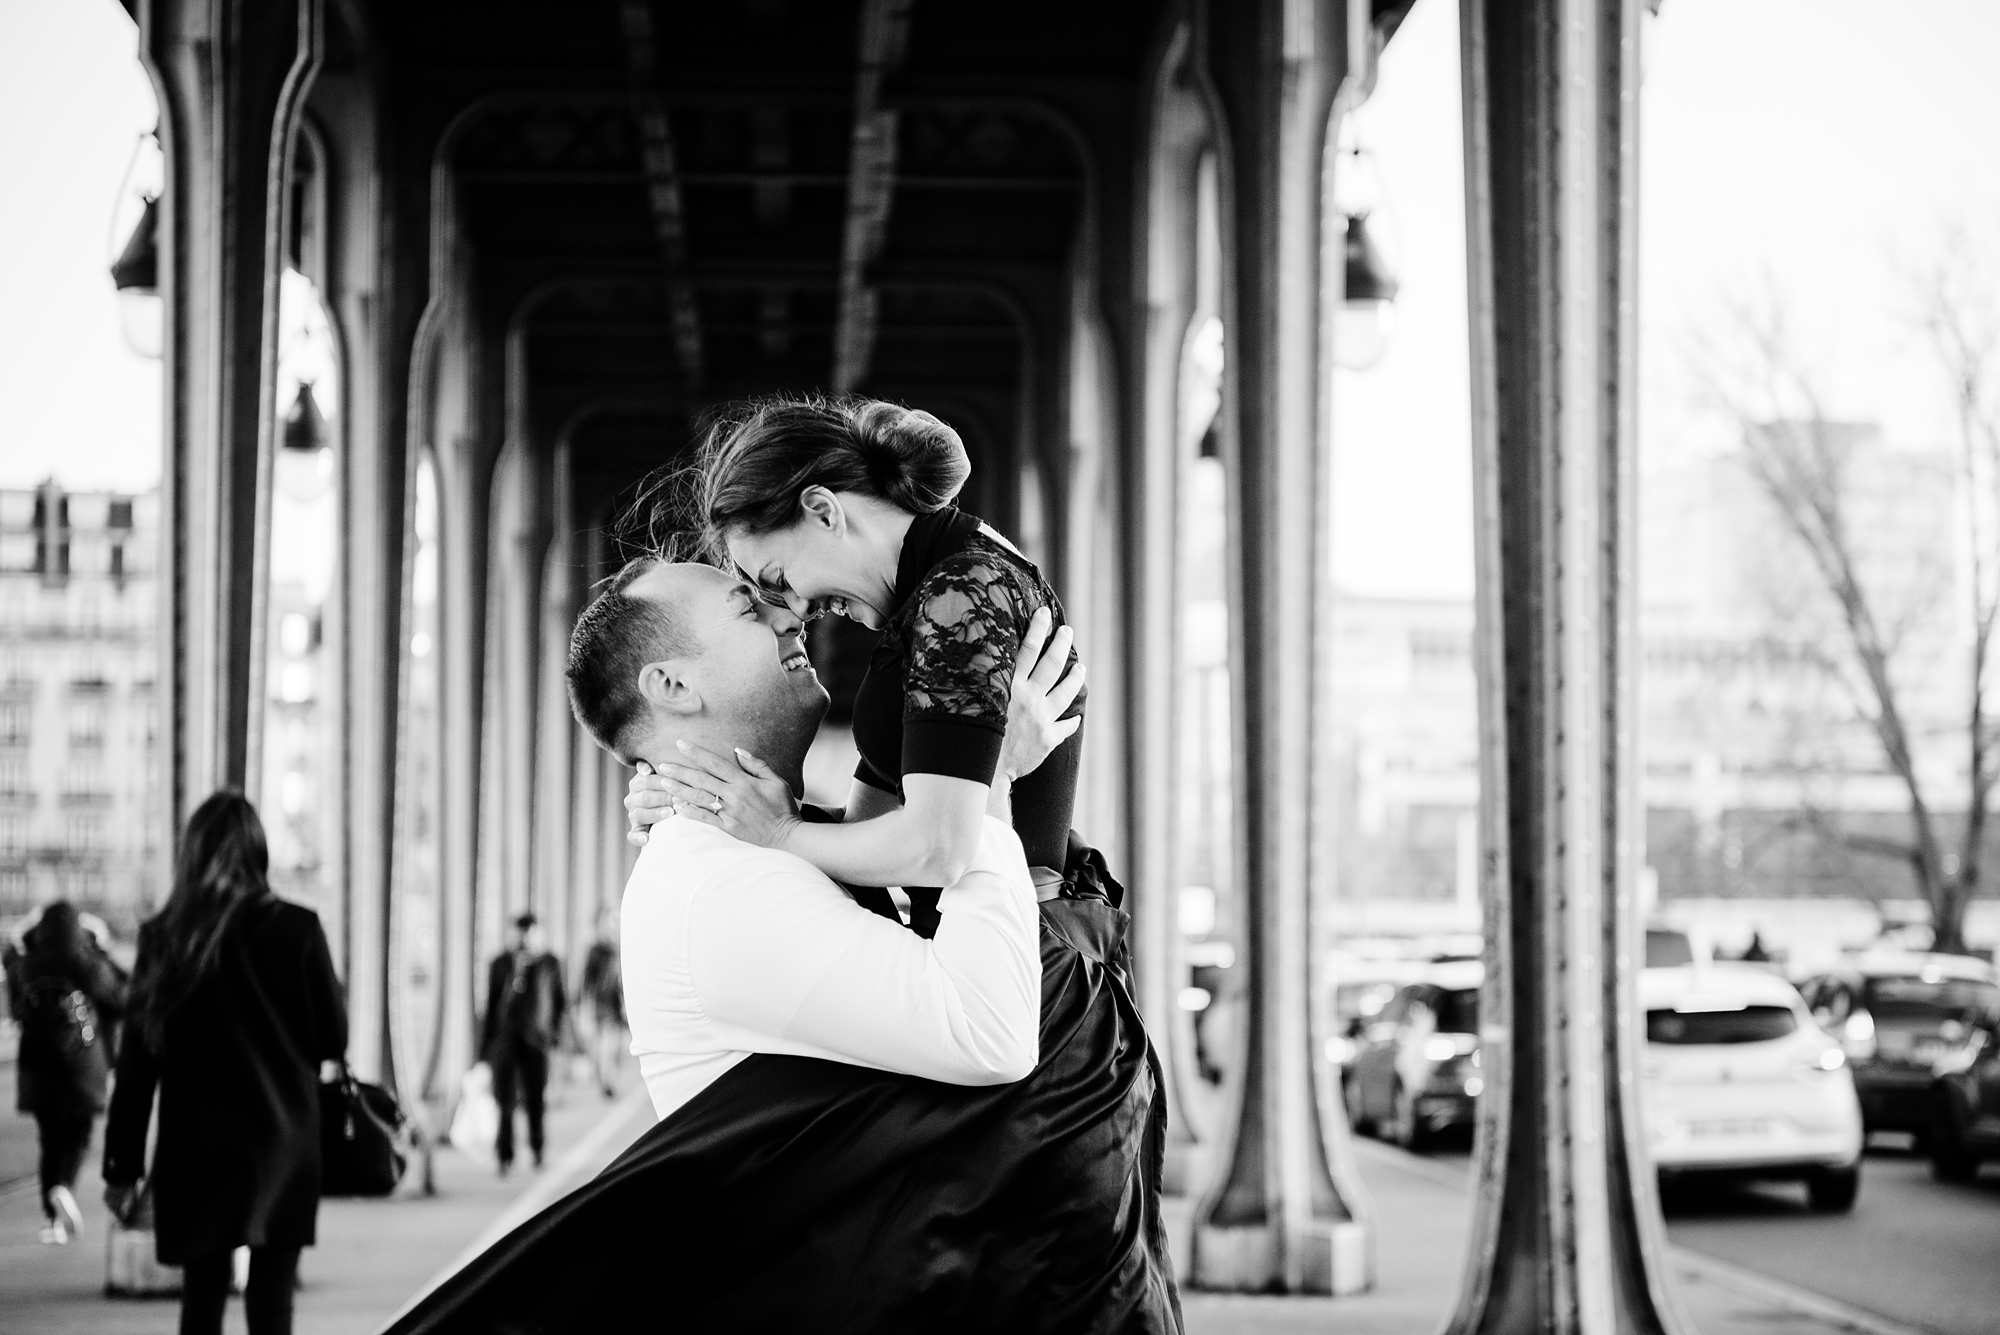 Jennifer and Yannick's Surprise Paris Proposal Photo Shoot at the Eiffel Tower - at the bir-hakeim bridge in black and white